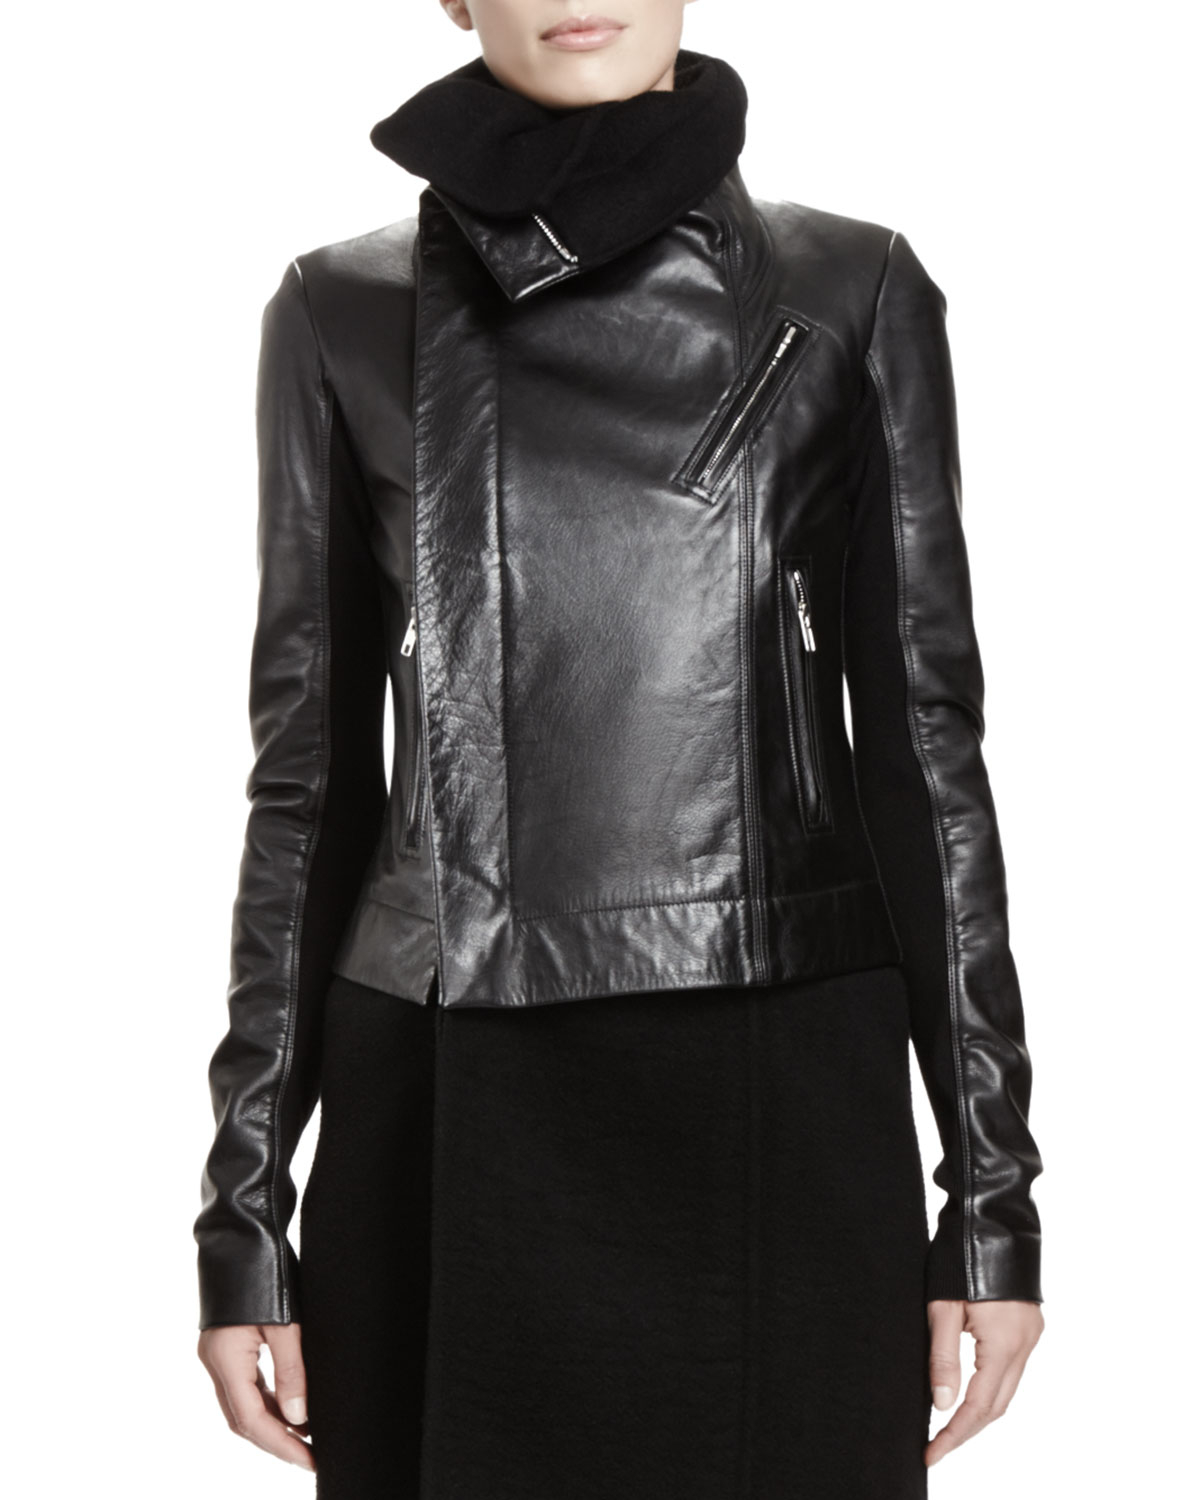 Lyst - Rick owens Leather Biker Jacket in Black